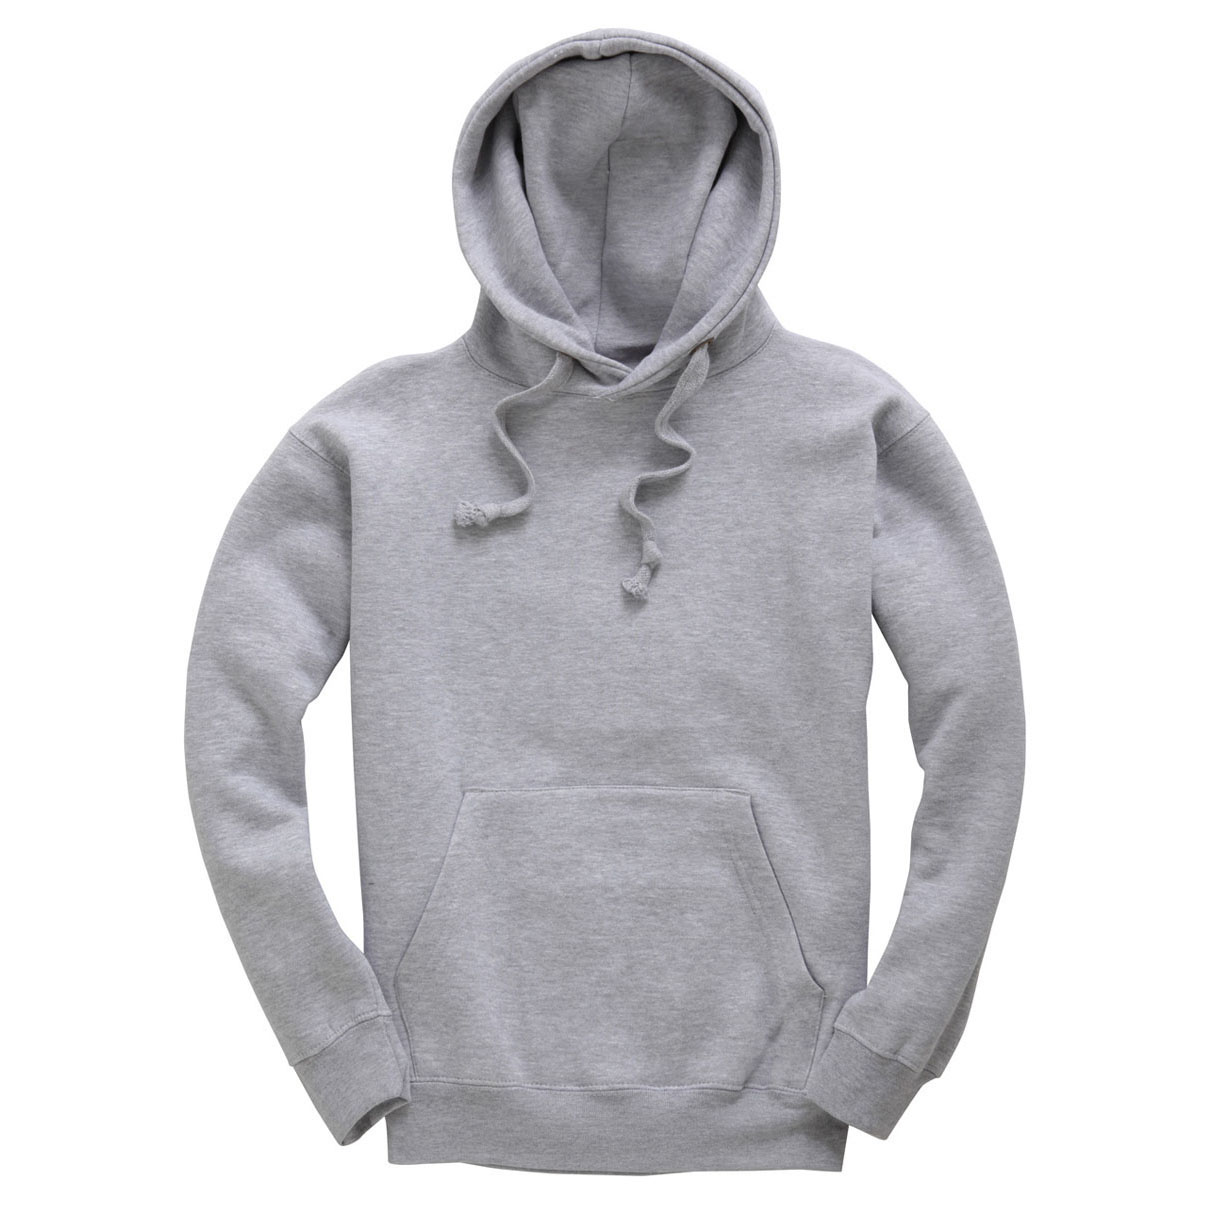 PREMIUM HEAVYWEIGHT HOODIE (£12.95) - Fabric Weight: 310gsmFabric Content: 65% Cotton 35 % PolyesterDouble fabric hood with self colour flat hood cordsHeavyweight soft feel fabricKangaroo pouch pocket with concealed iPod and phone pocketRibbed cuff and hemTwin Needle stitching detail